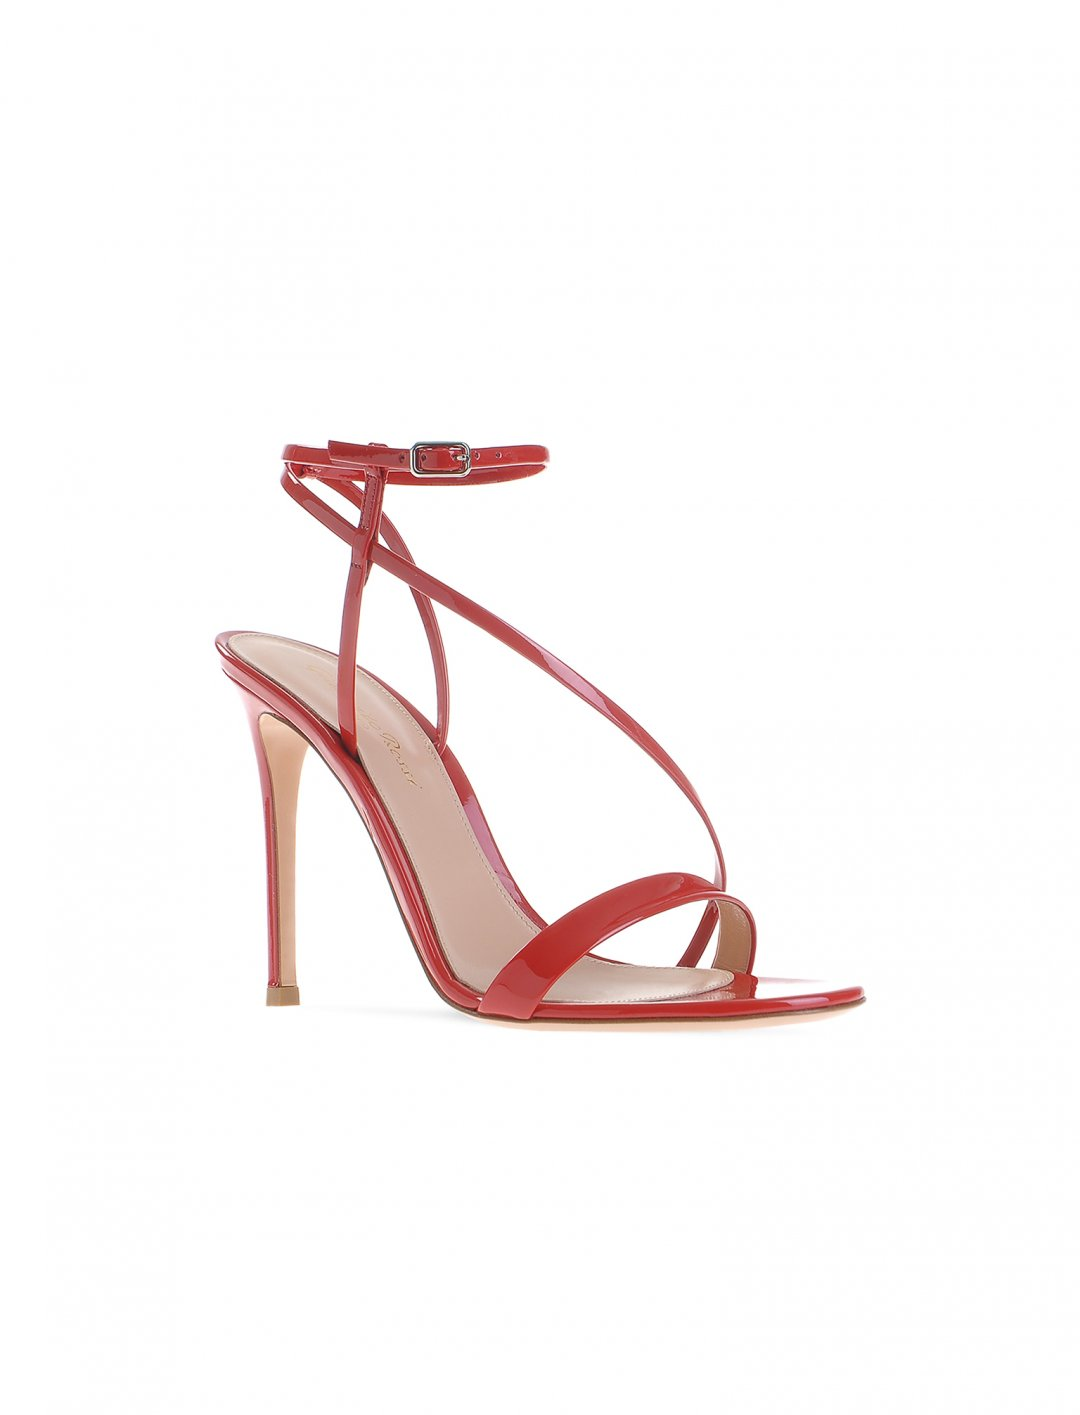 "Camila's Red Strappy Sandals {""id"":12,""product_section_id"":1,""name"":""Shoes"",""order"":12} Gianvito Rossi"